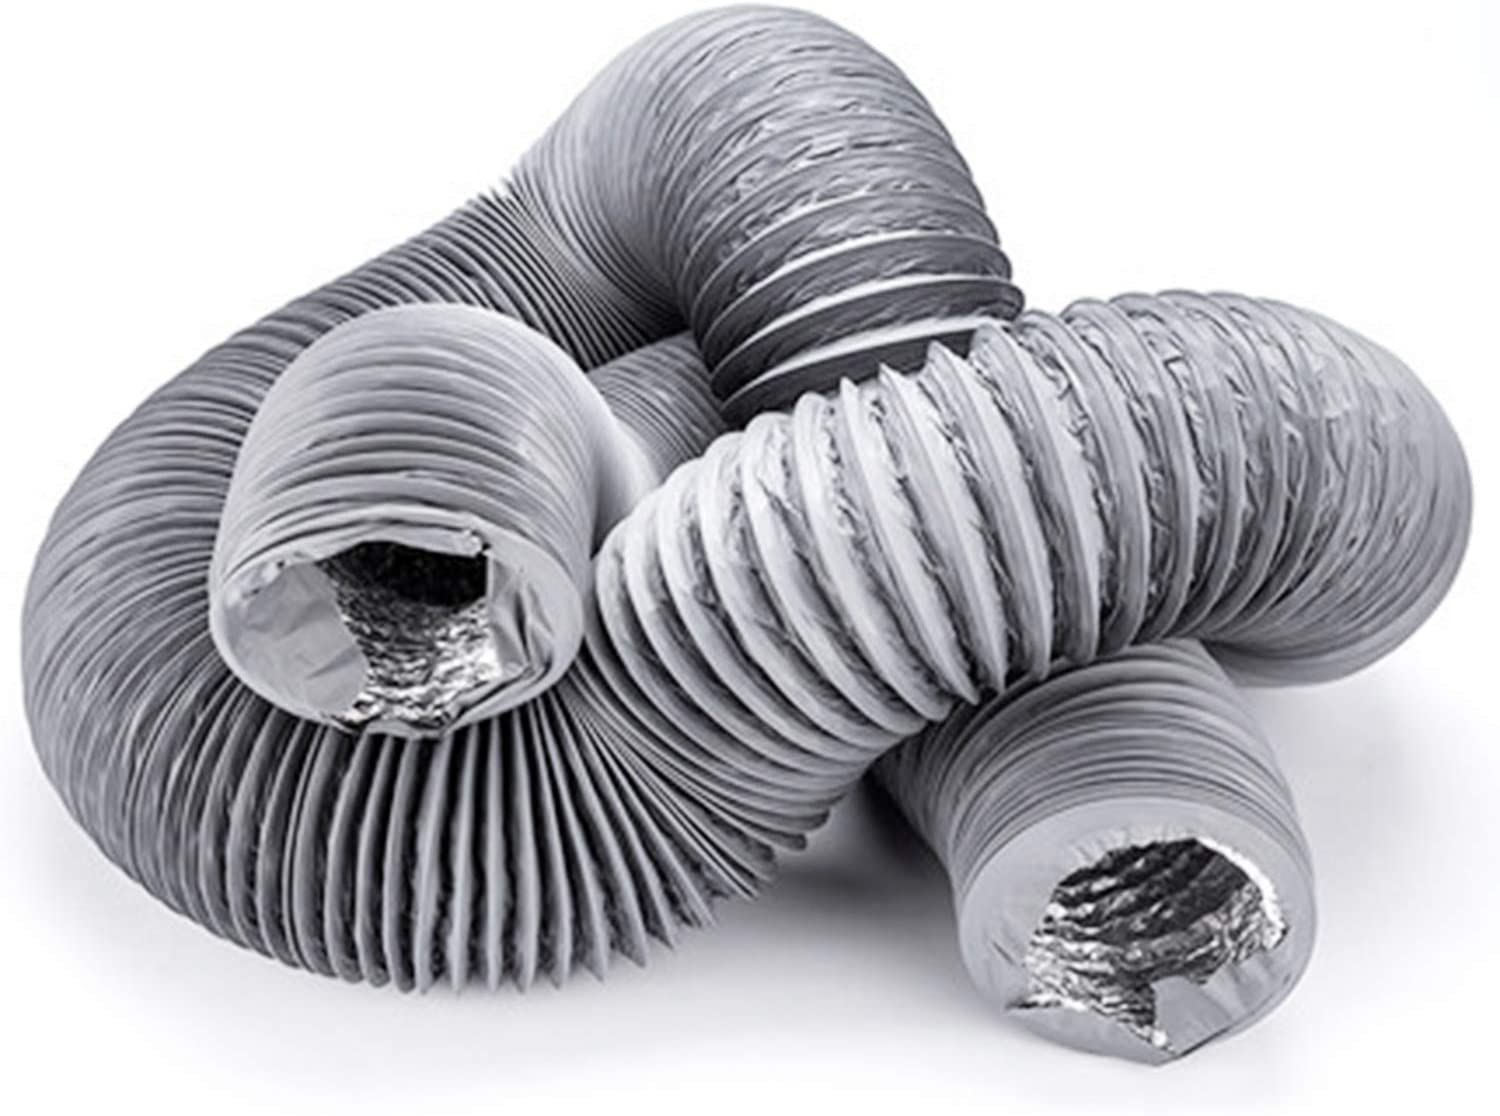 Hon&Guan 3 inch Air Duct - 16 FT Long, Flexible Ducting HVAC Ventilation Air Hose for Grow Tents, Dryer Rooms,Kitchen